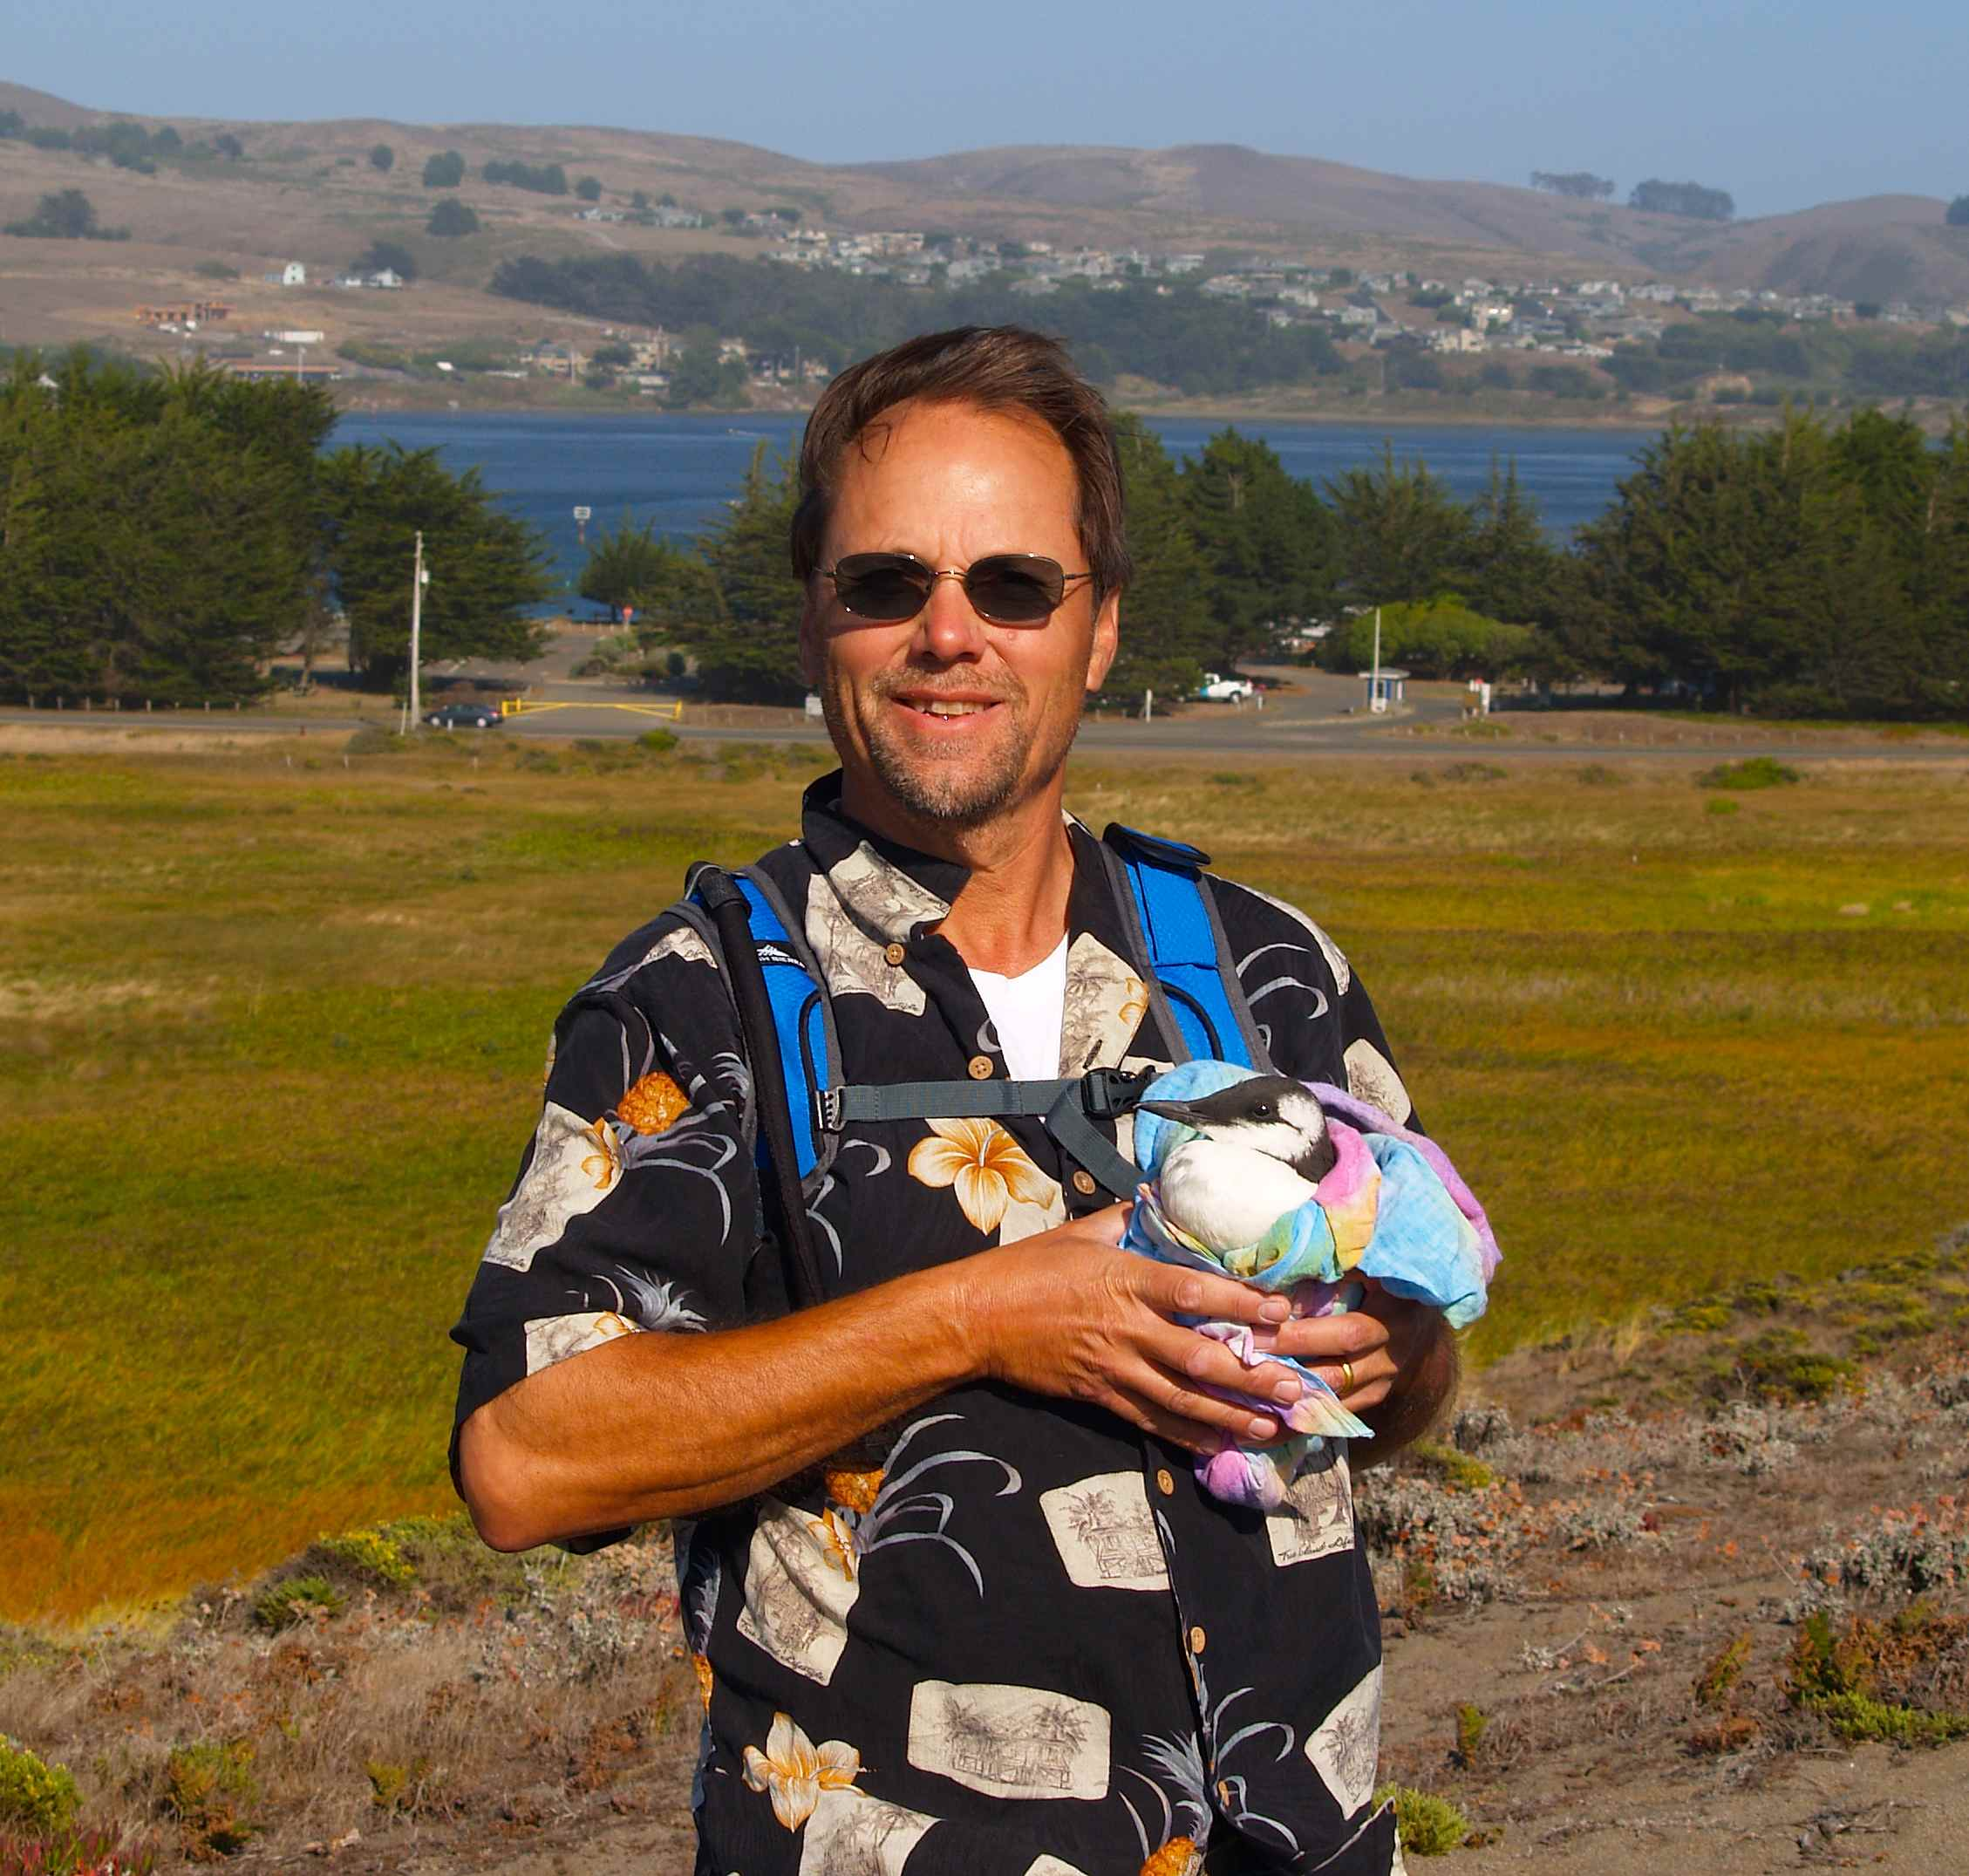 Capt. William E. Simpson on location in Bodega Bay, CA with a rescued Murre. A Murre is a sea bird that is capable of diving up to 100 meters in search of food.